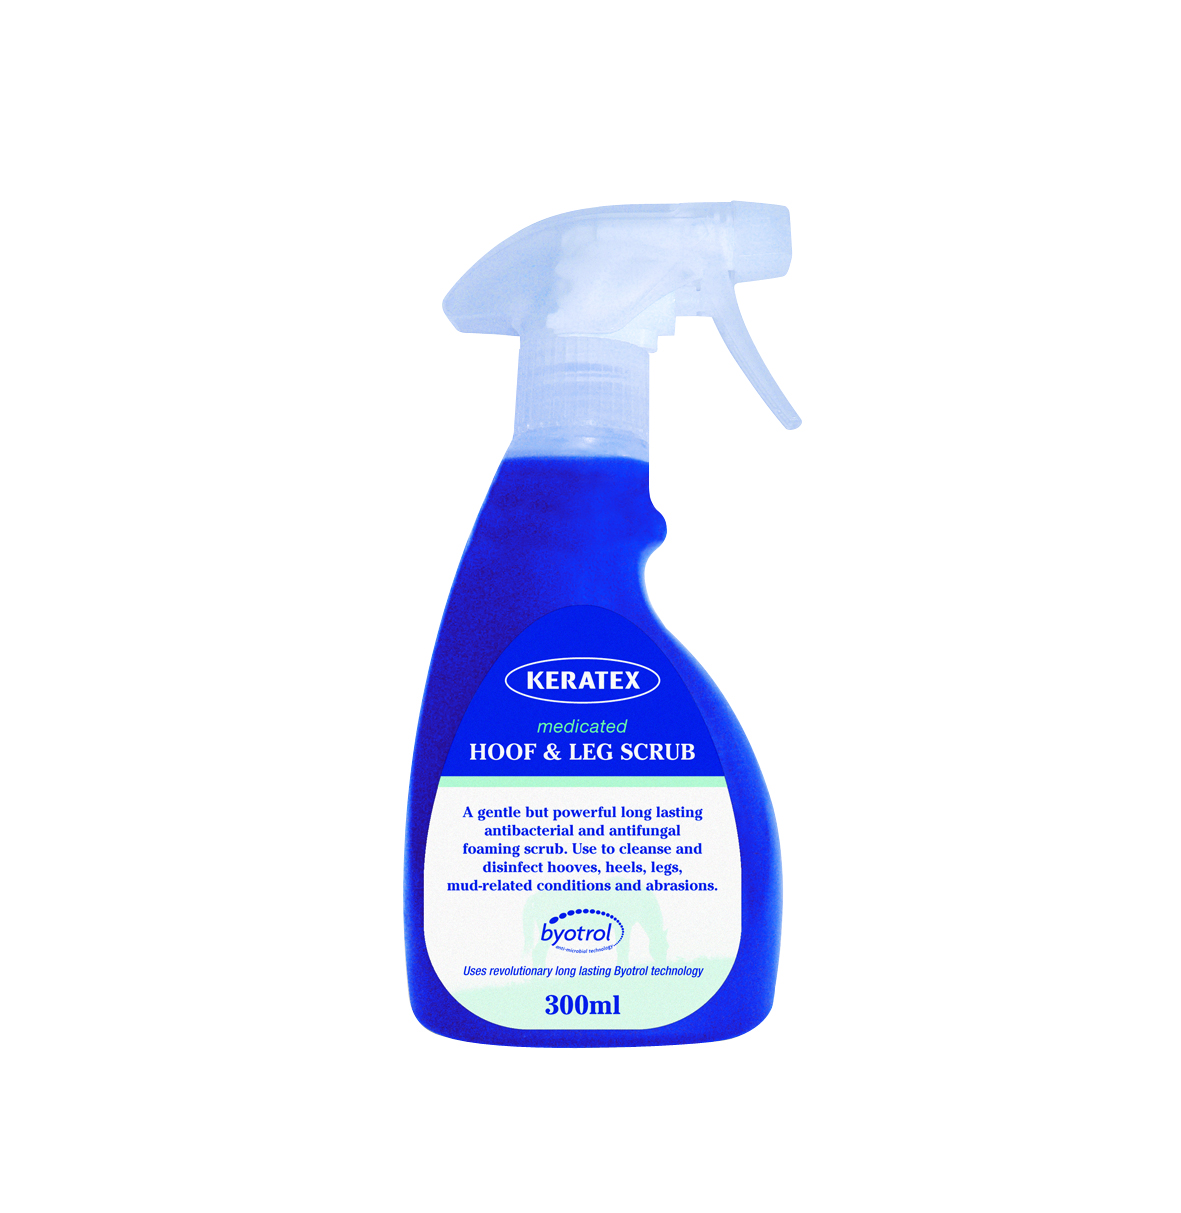 Keratex Cleansing Hoof & Leg Scrub 300ml